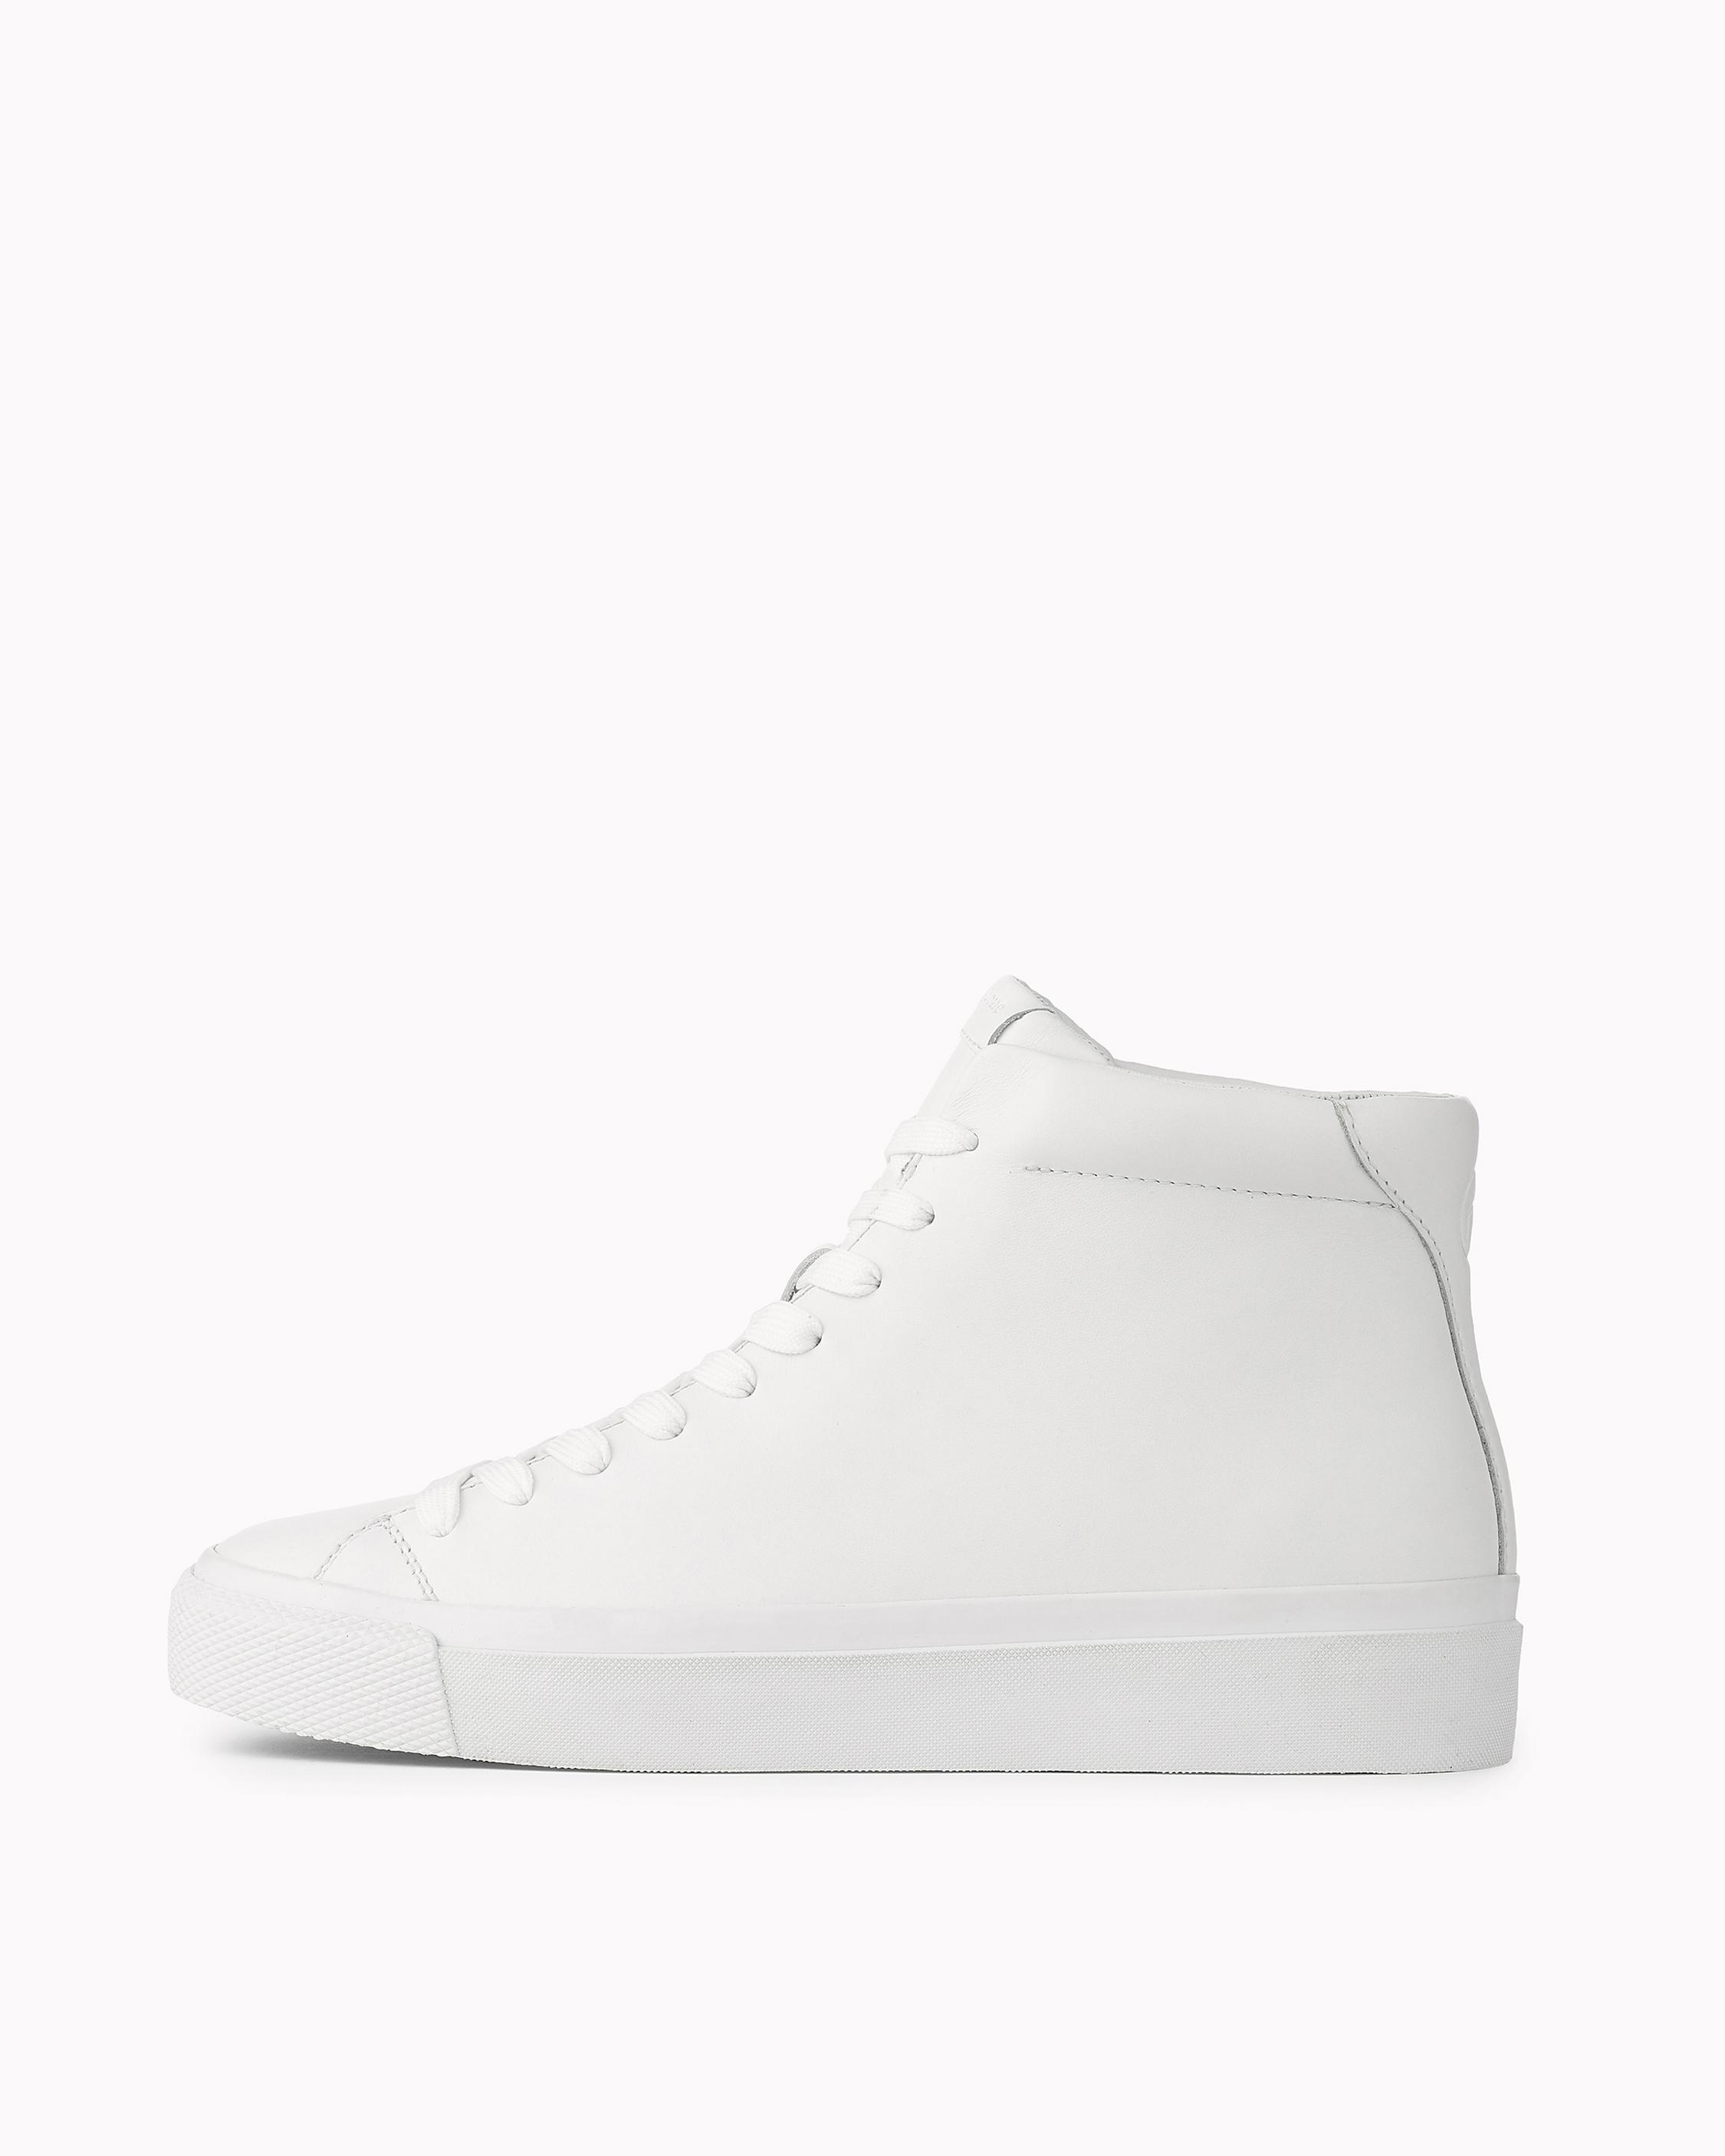 Rb1 High Top Lace-Up Sneakers for Men